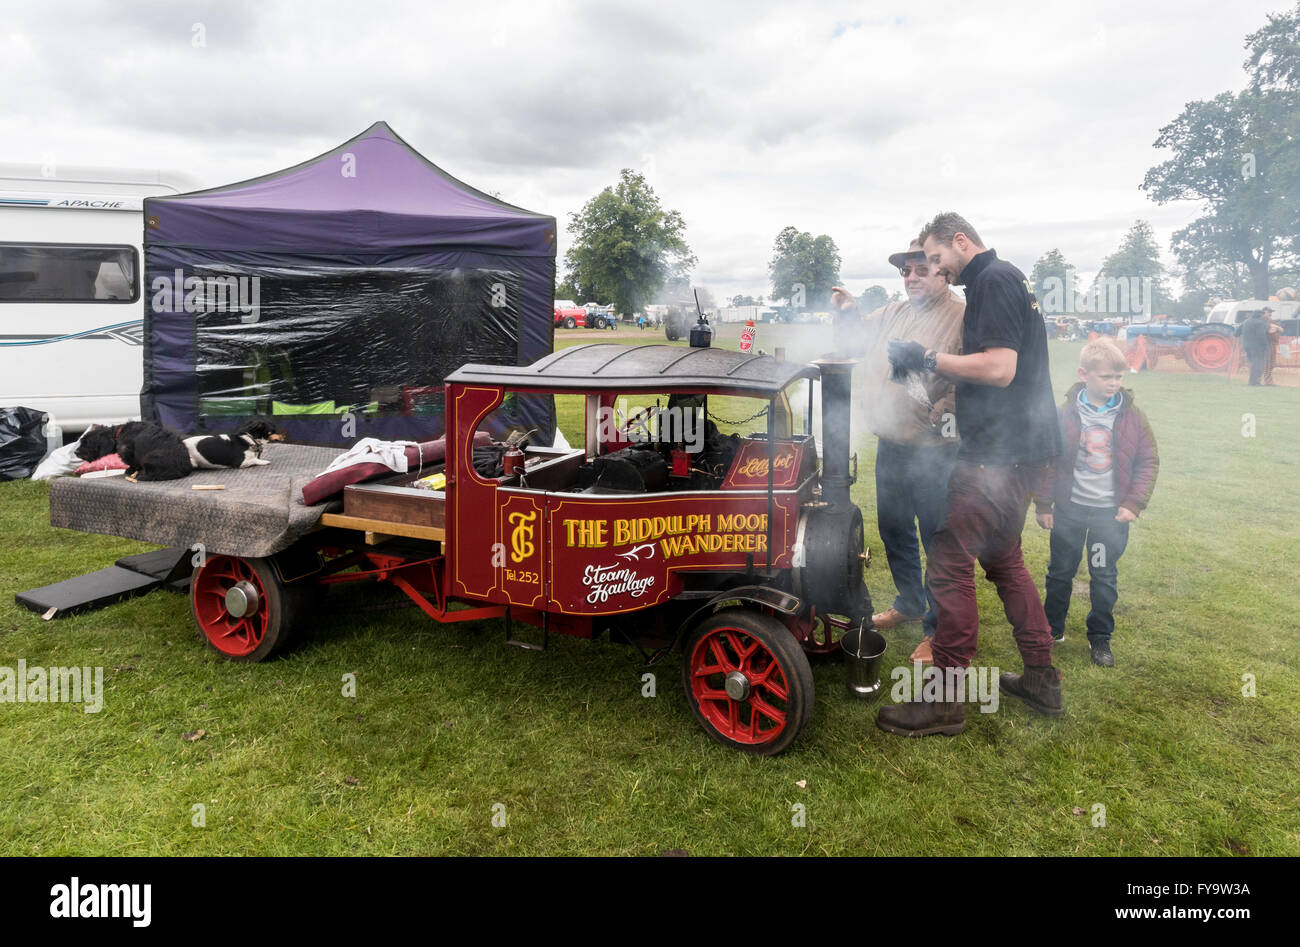 Minature steam engine being prepared at Astle Park Chelford UK - Stock Image